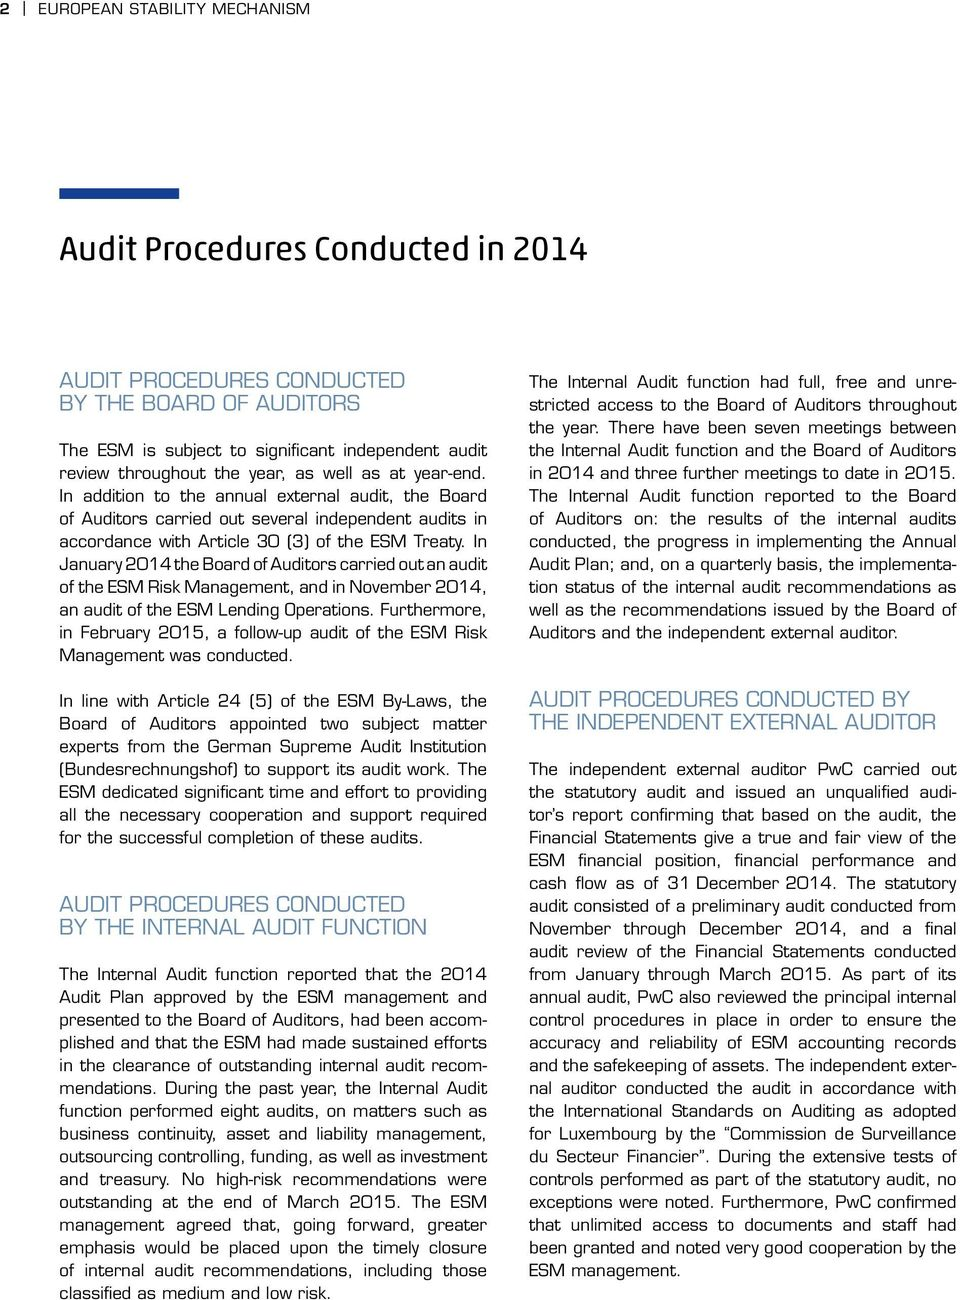 In January 2014 the Board of Auditors carried out an audit of the ESM Risk Management, and in November 2014, an audit of the ESM Lending Operations.